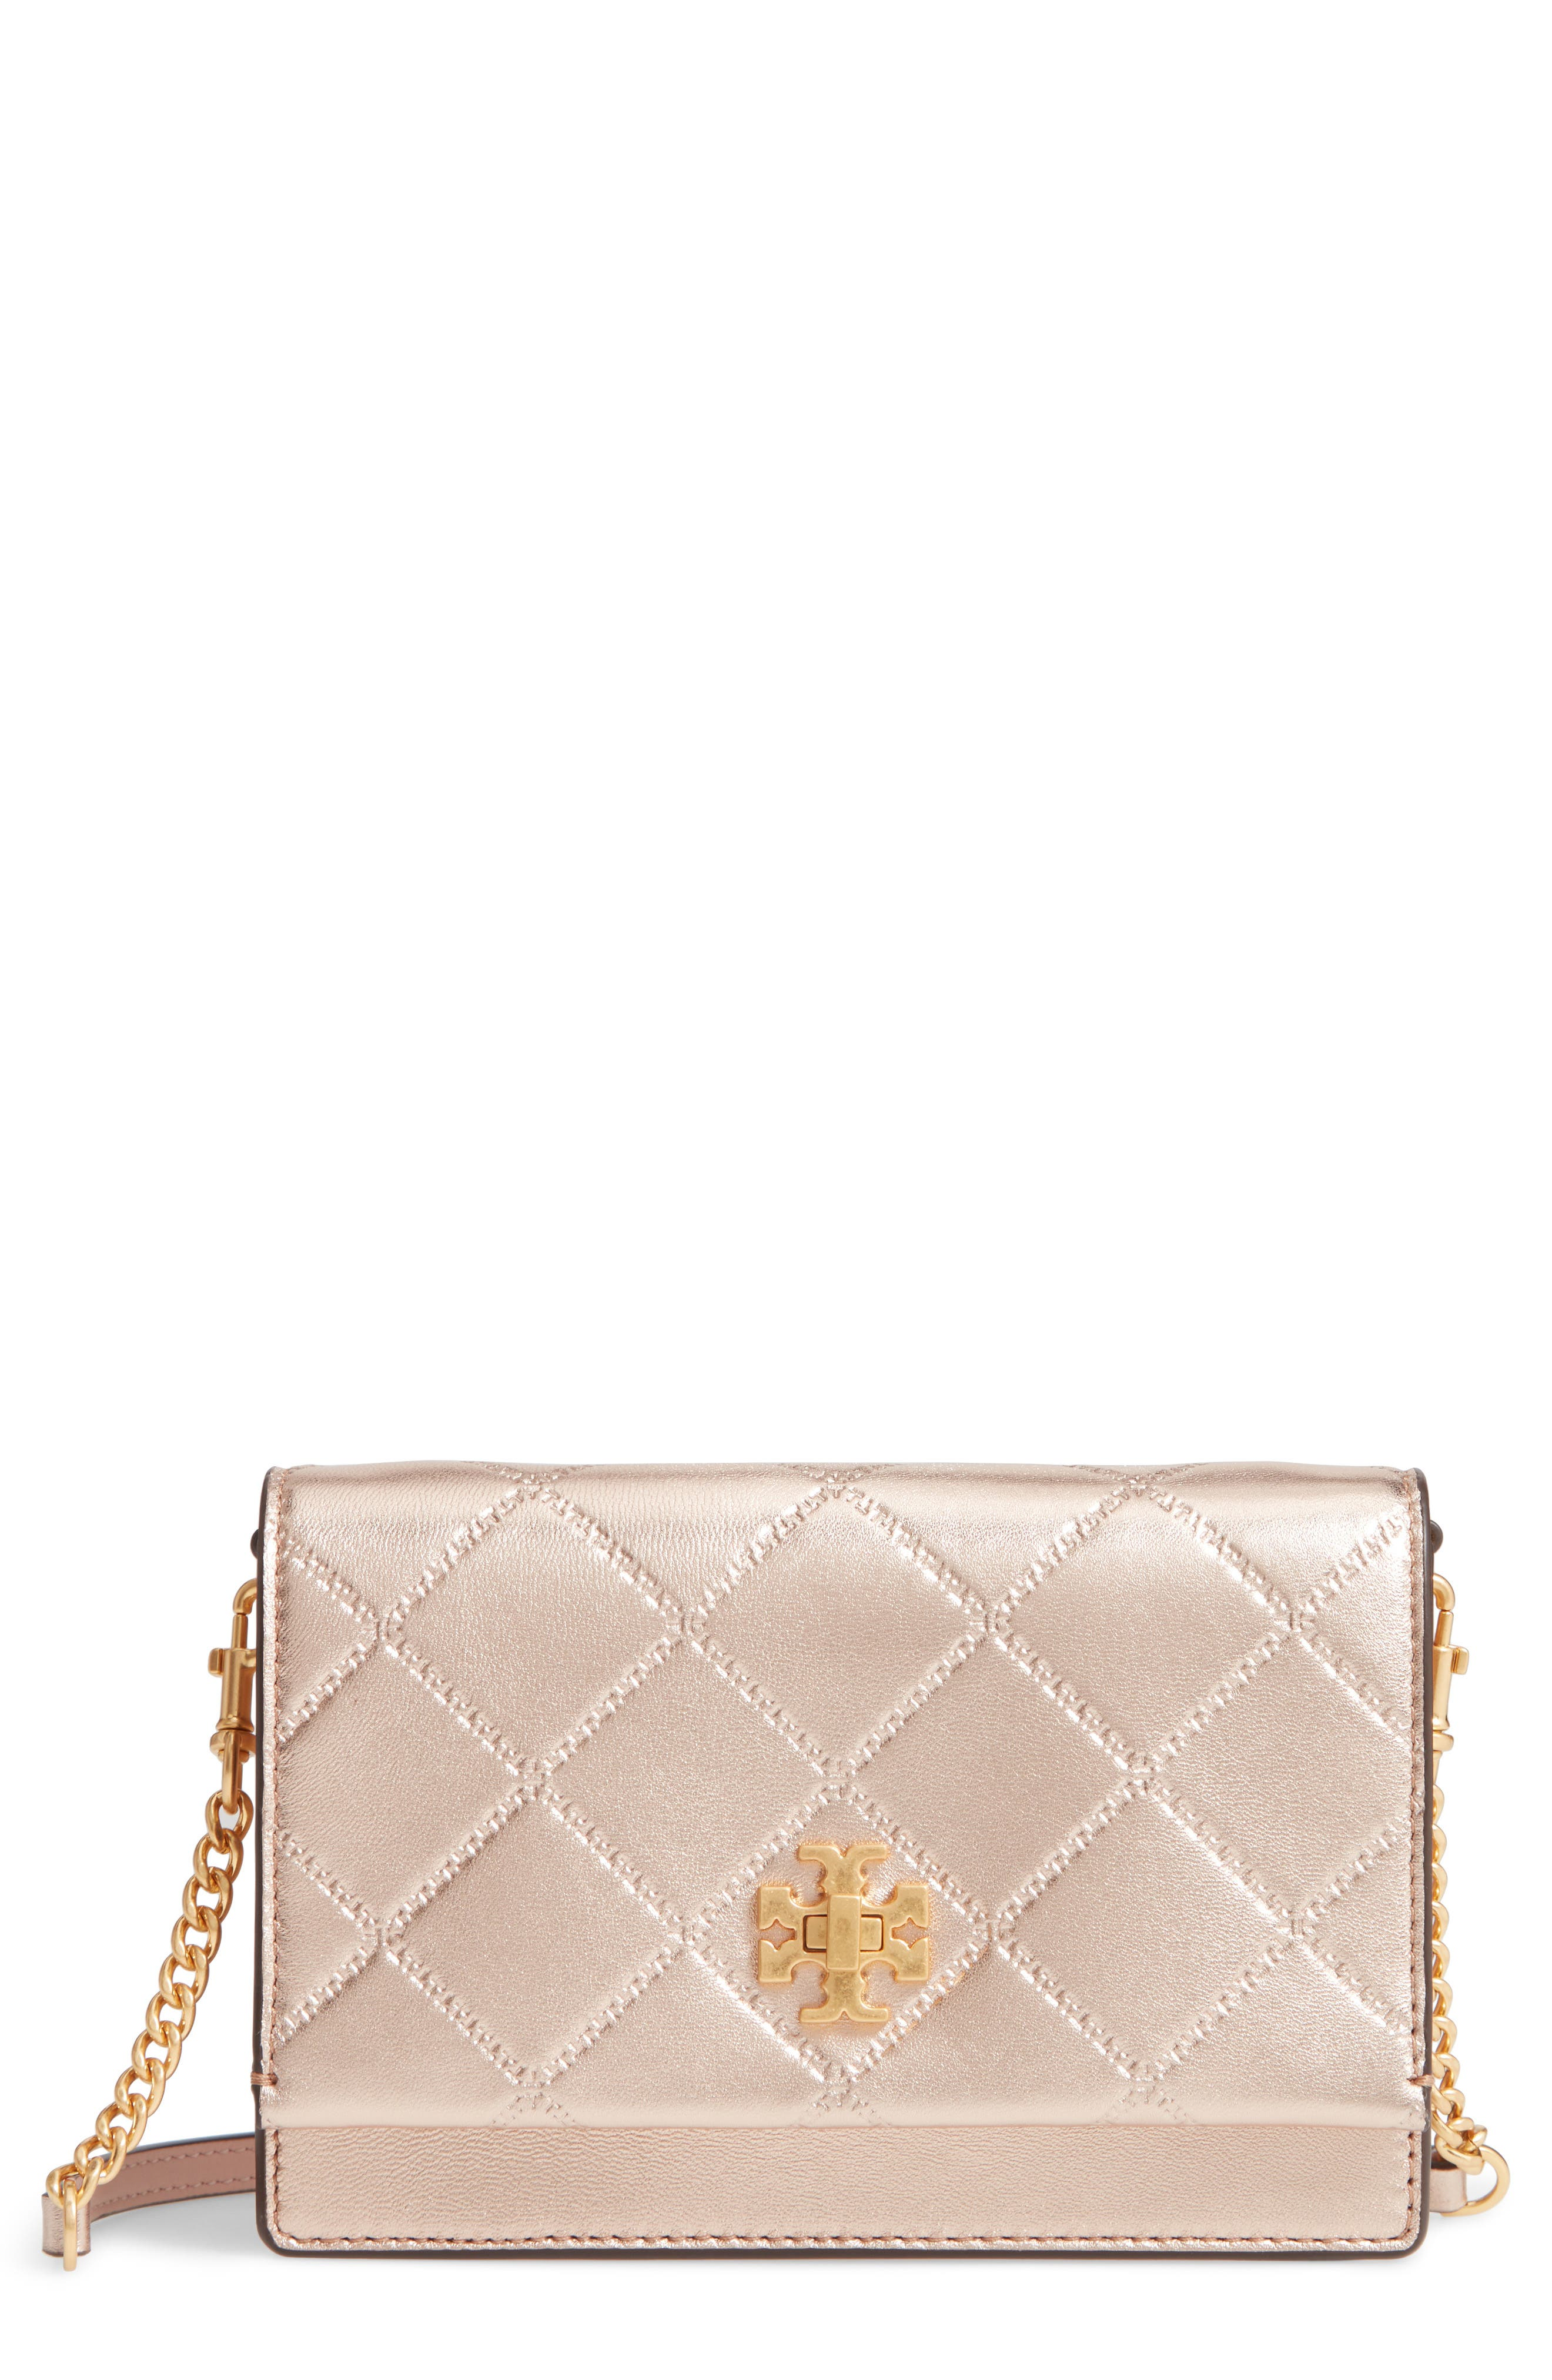 TORY BURCH,                             Mini Georgia Quilted Metallic Leather Shoulder Bag,                             Main thumbnail 1, color,                             650